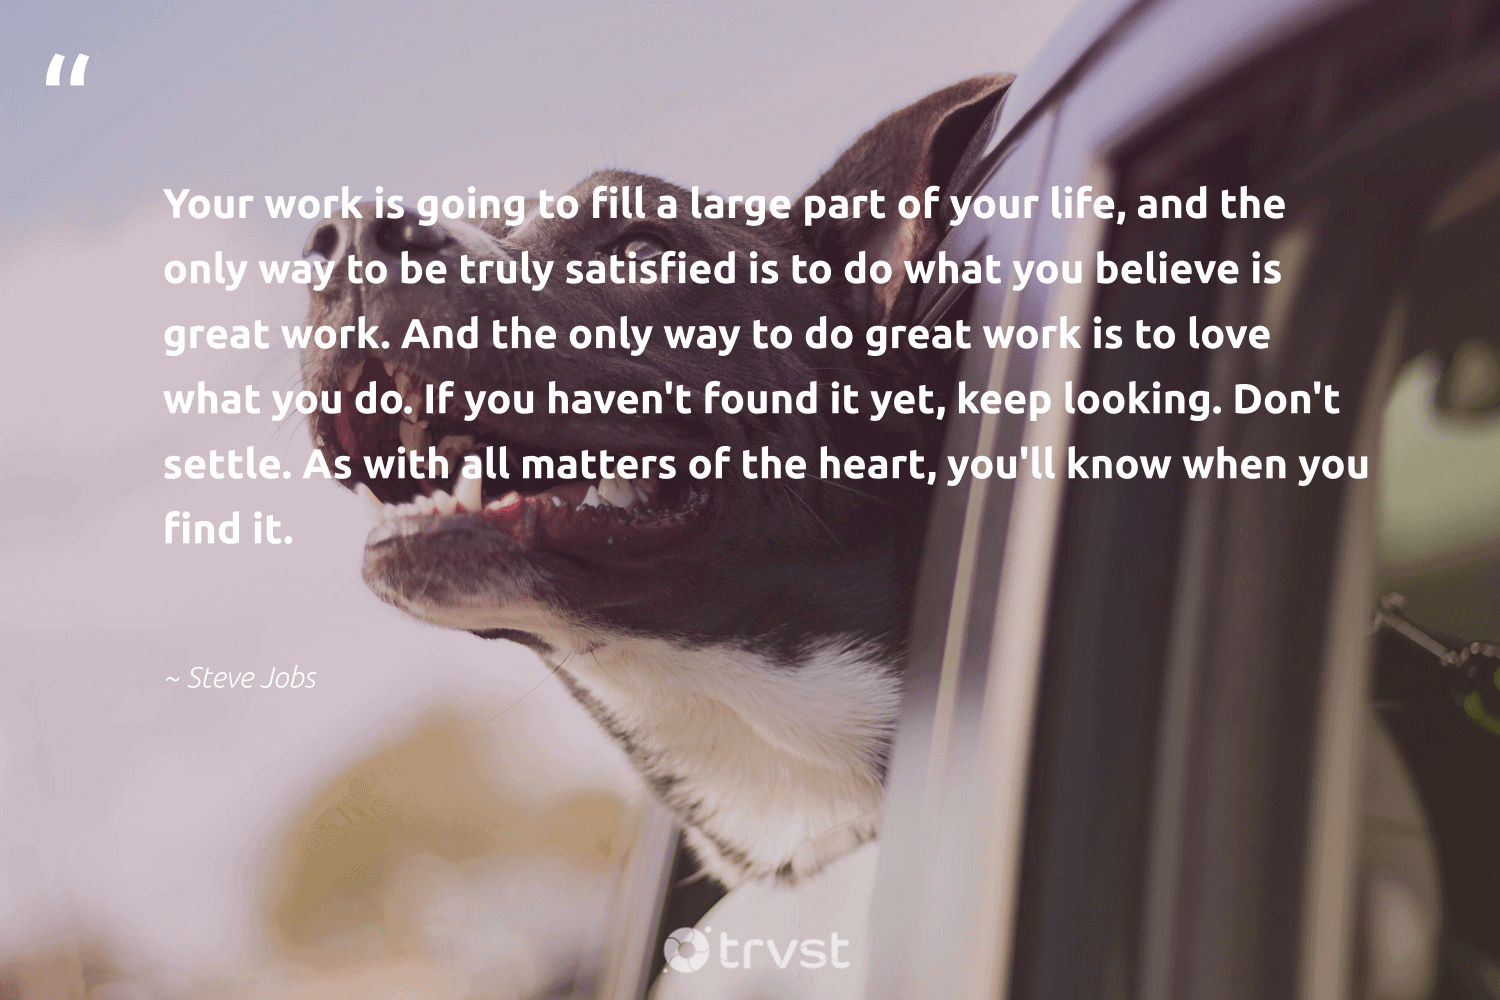 """""""Your work is going to fill a large part of your life, and the only way to be truly satisfied is to do what you believe is great work. And the only way to do great work is to love what you do. If you haven't found it yet, keep looking. Don't settle. As with all matters of the heart, you'll know when you find it.""""  - Steve Jobs #trvst #quotes #love #begreat #gogreen #futureofwork #socialimpact #nevergiveup #ecoconscious #softskills #thinkgreen #dotherightthing"""